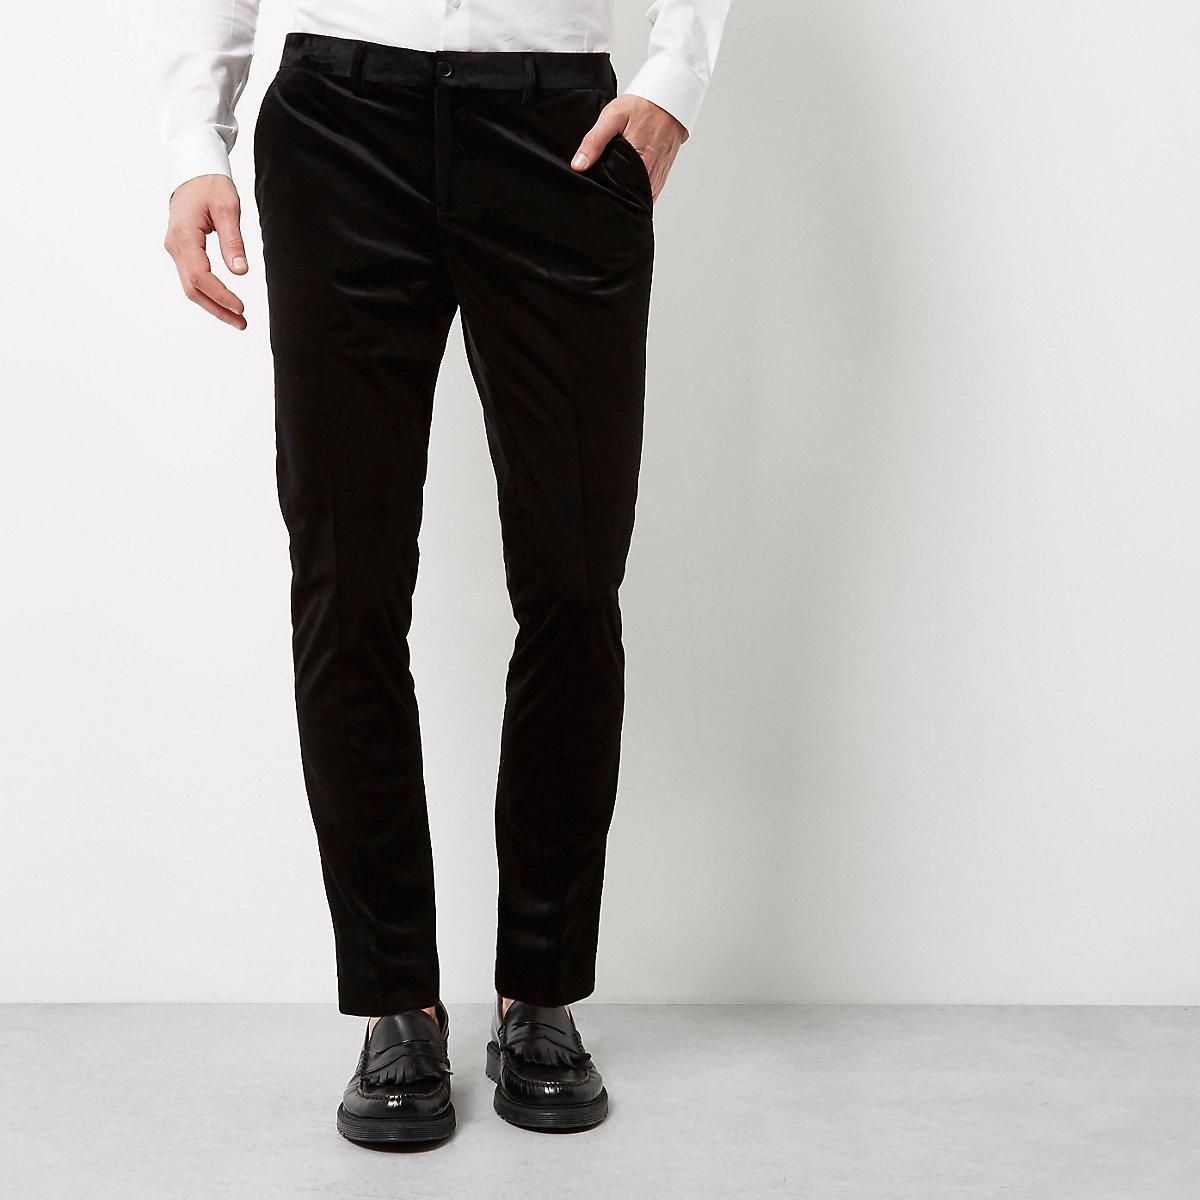 Black smart velvet skinny fit pants